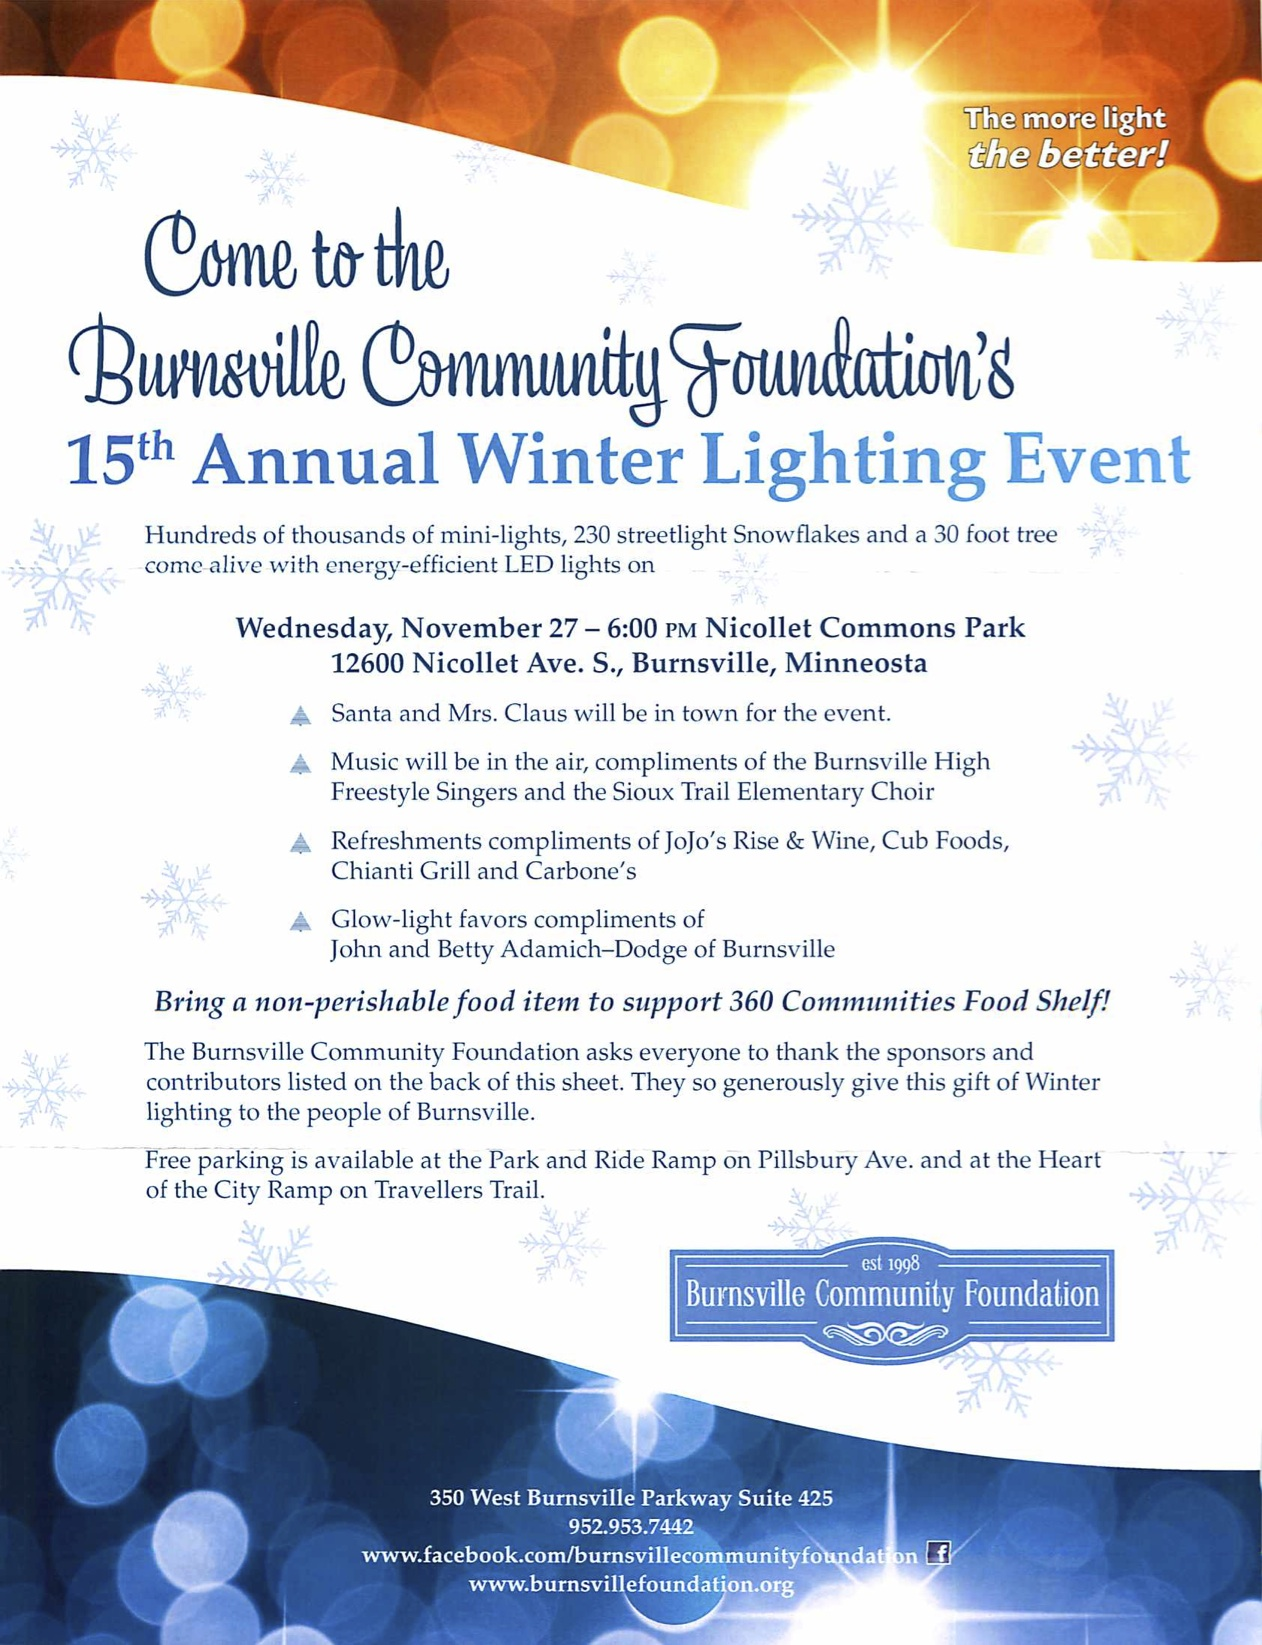 2013 Burnsville Minnesota Winter Lighting Event